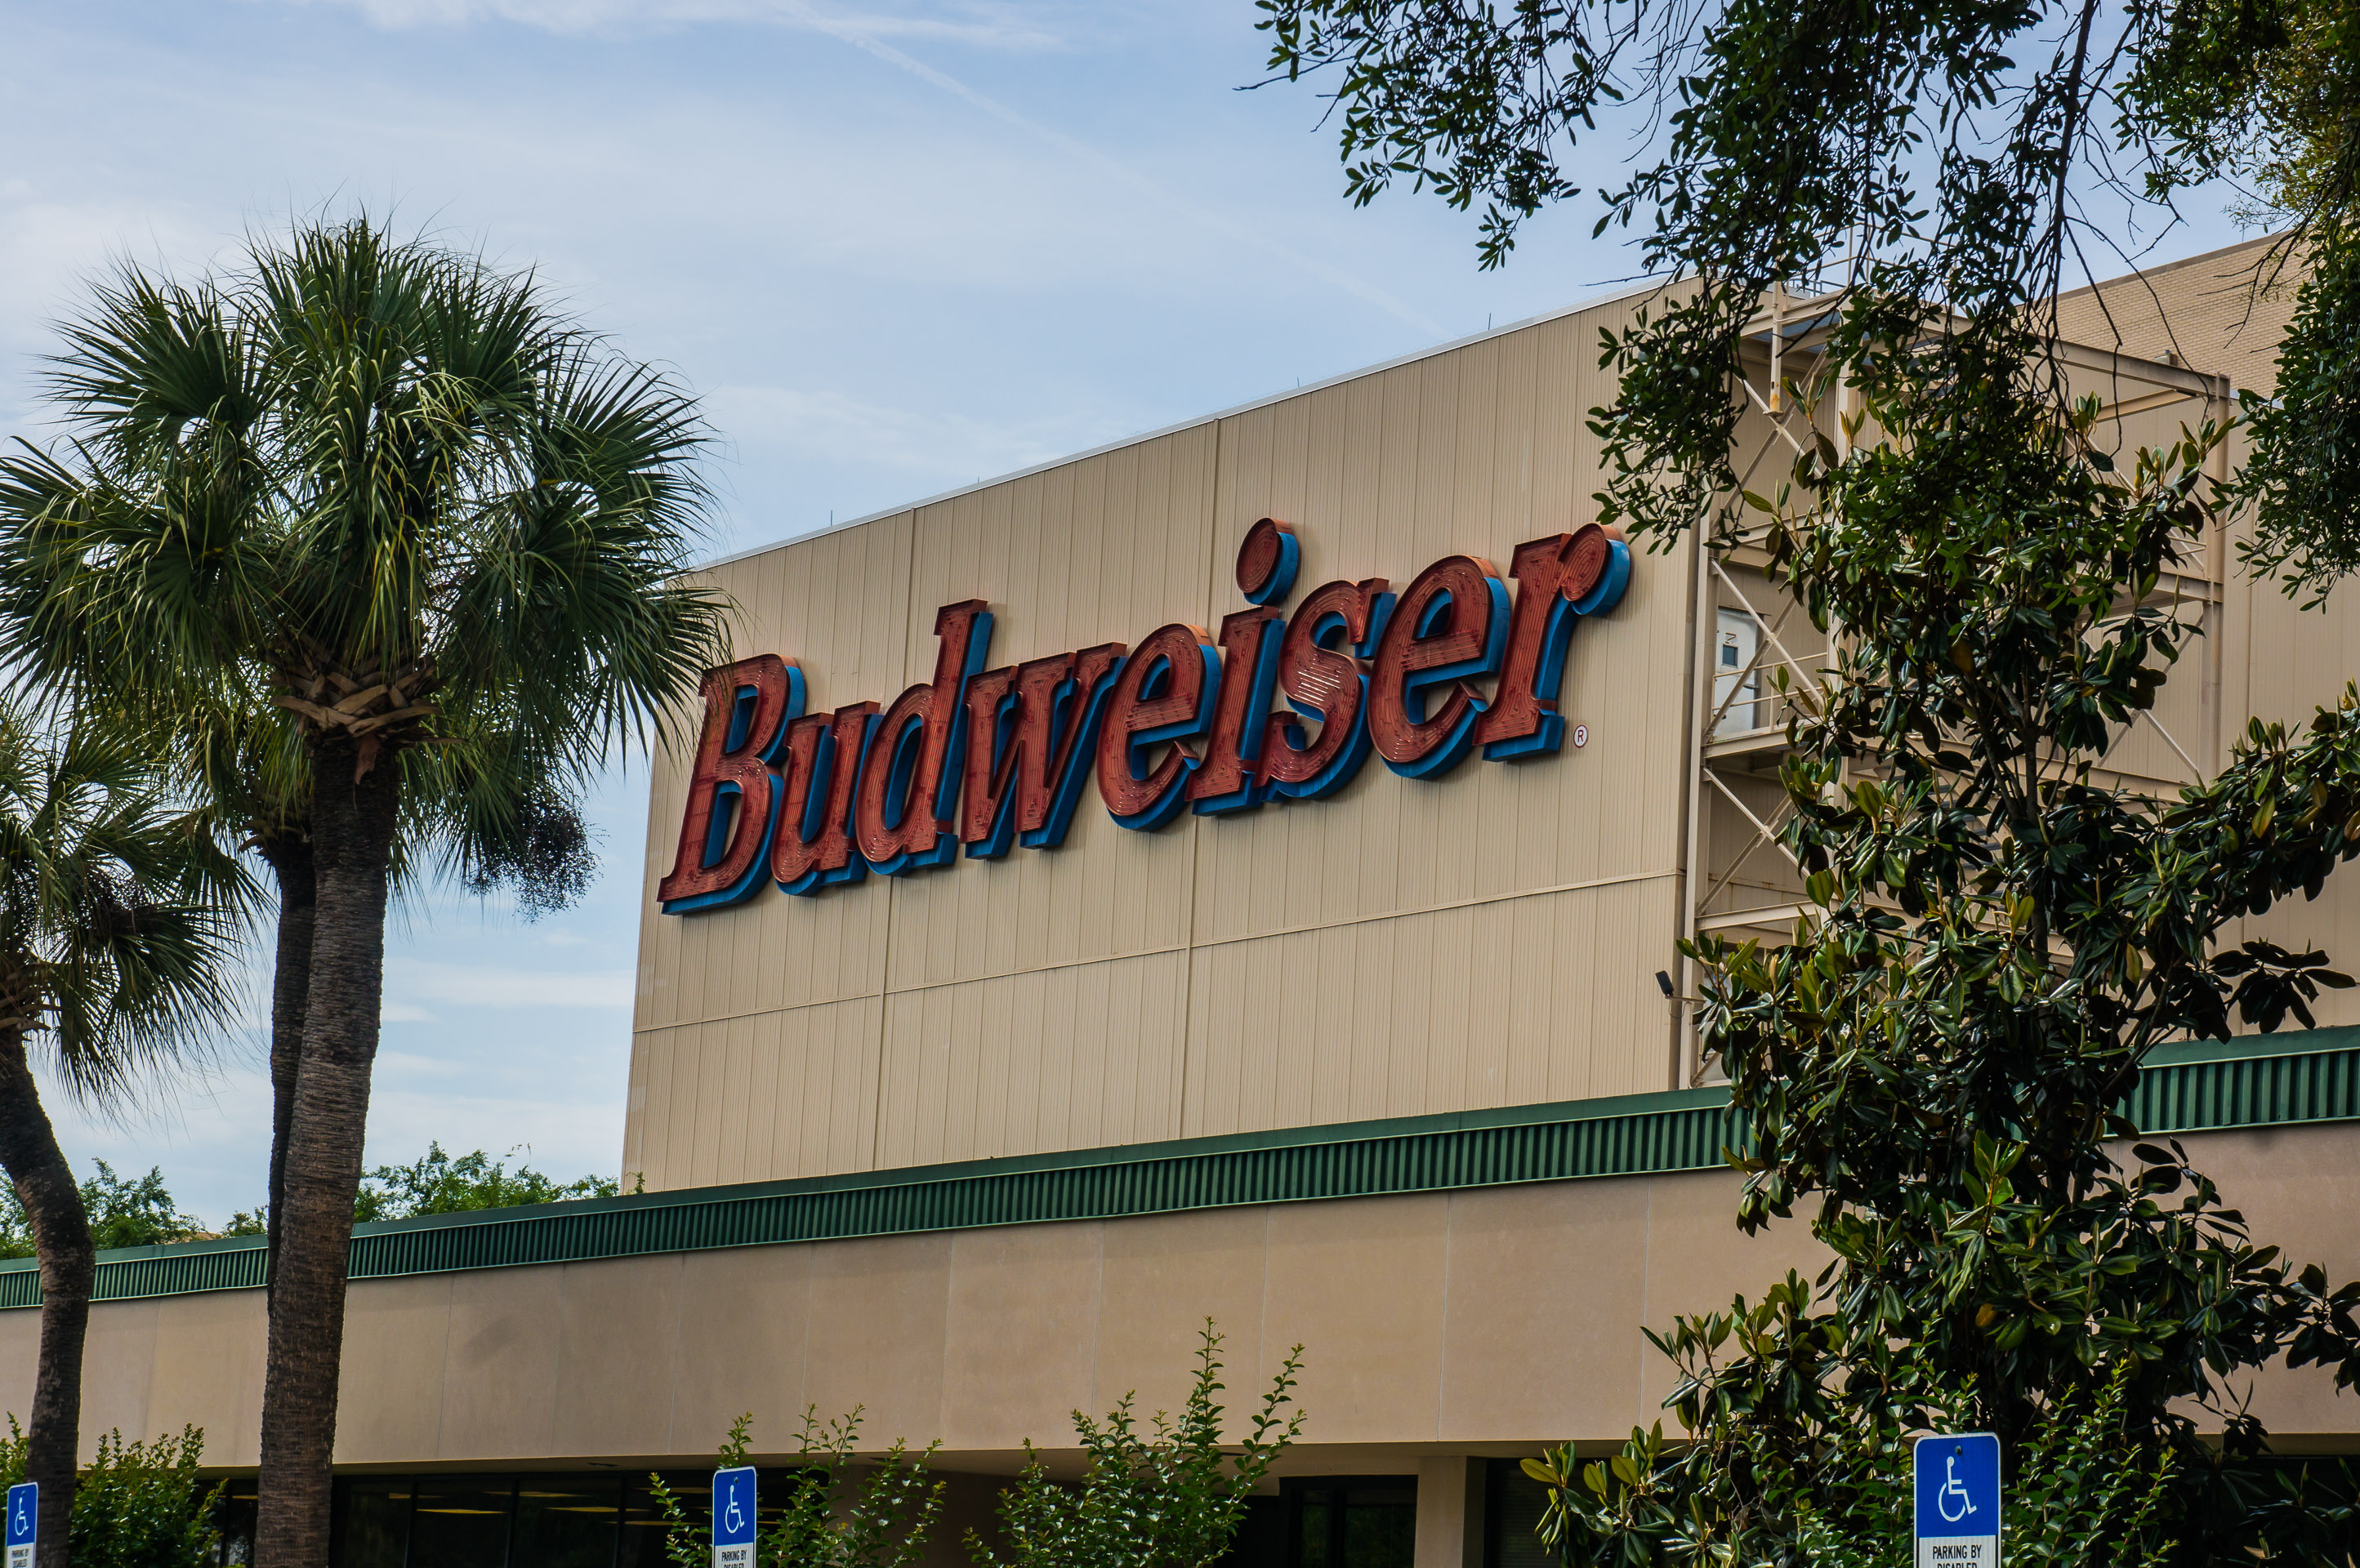 Budweiser beer school in jacksonville fl review and tour for Craft beer jacksonville fl